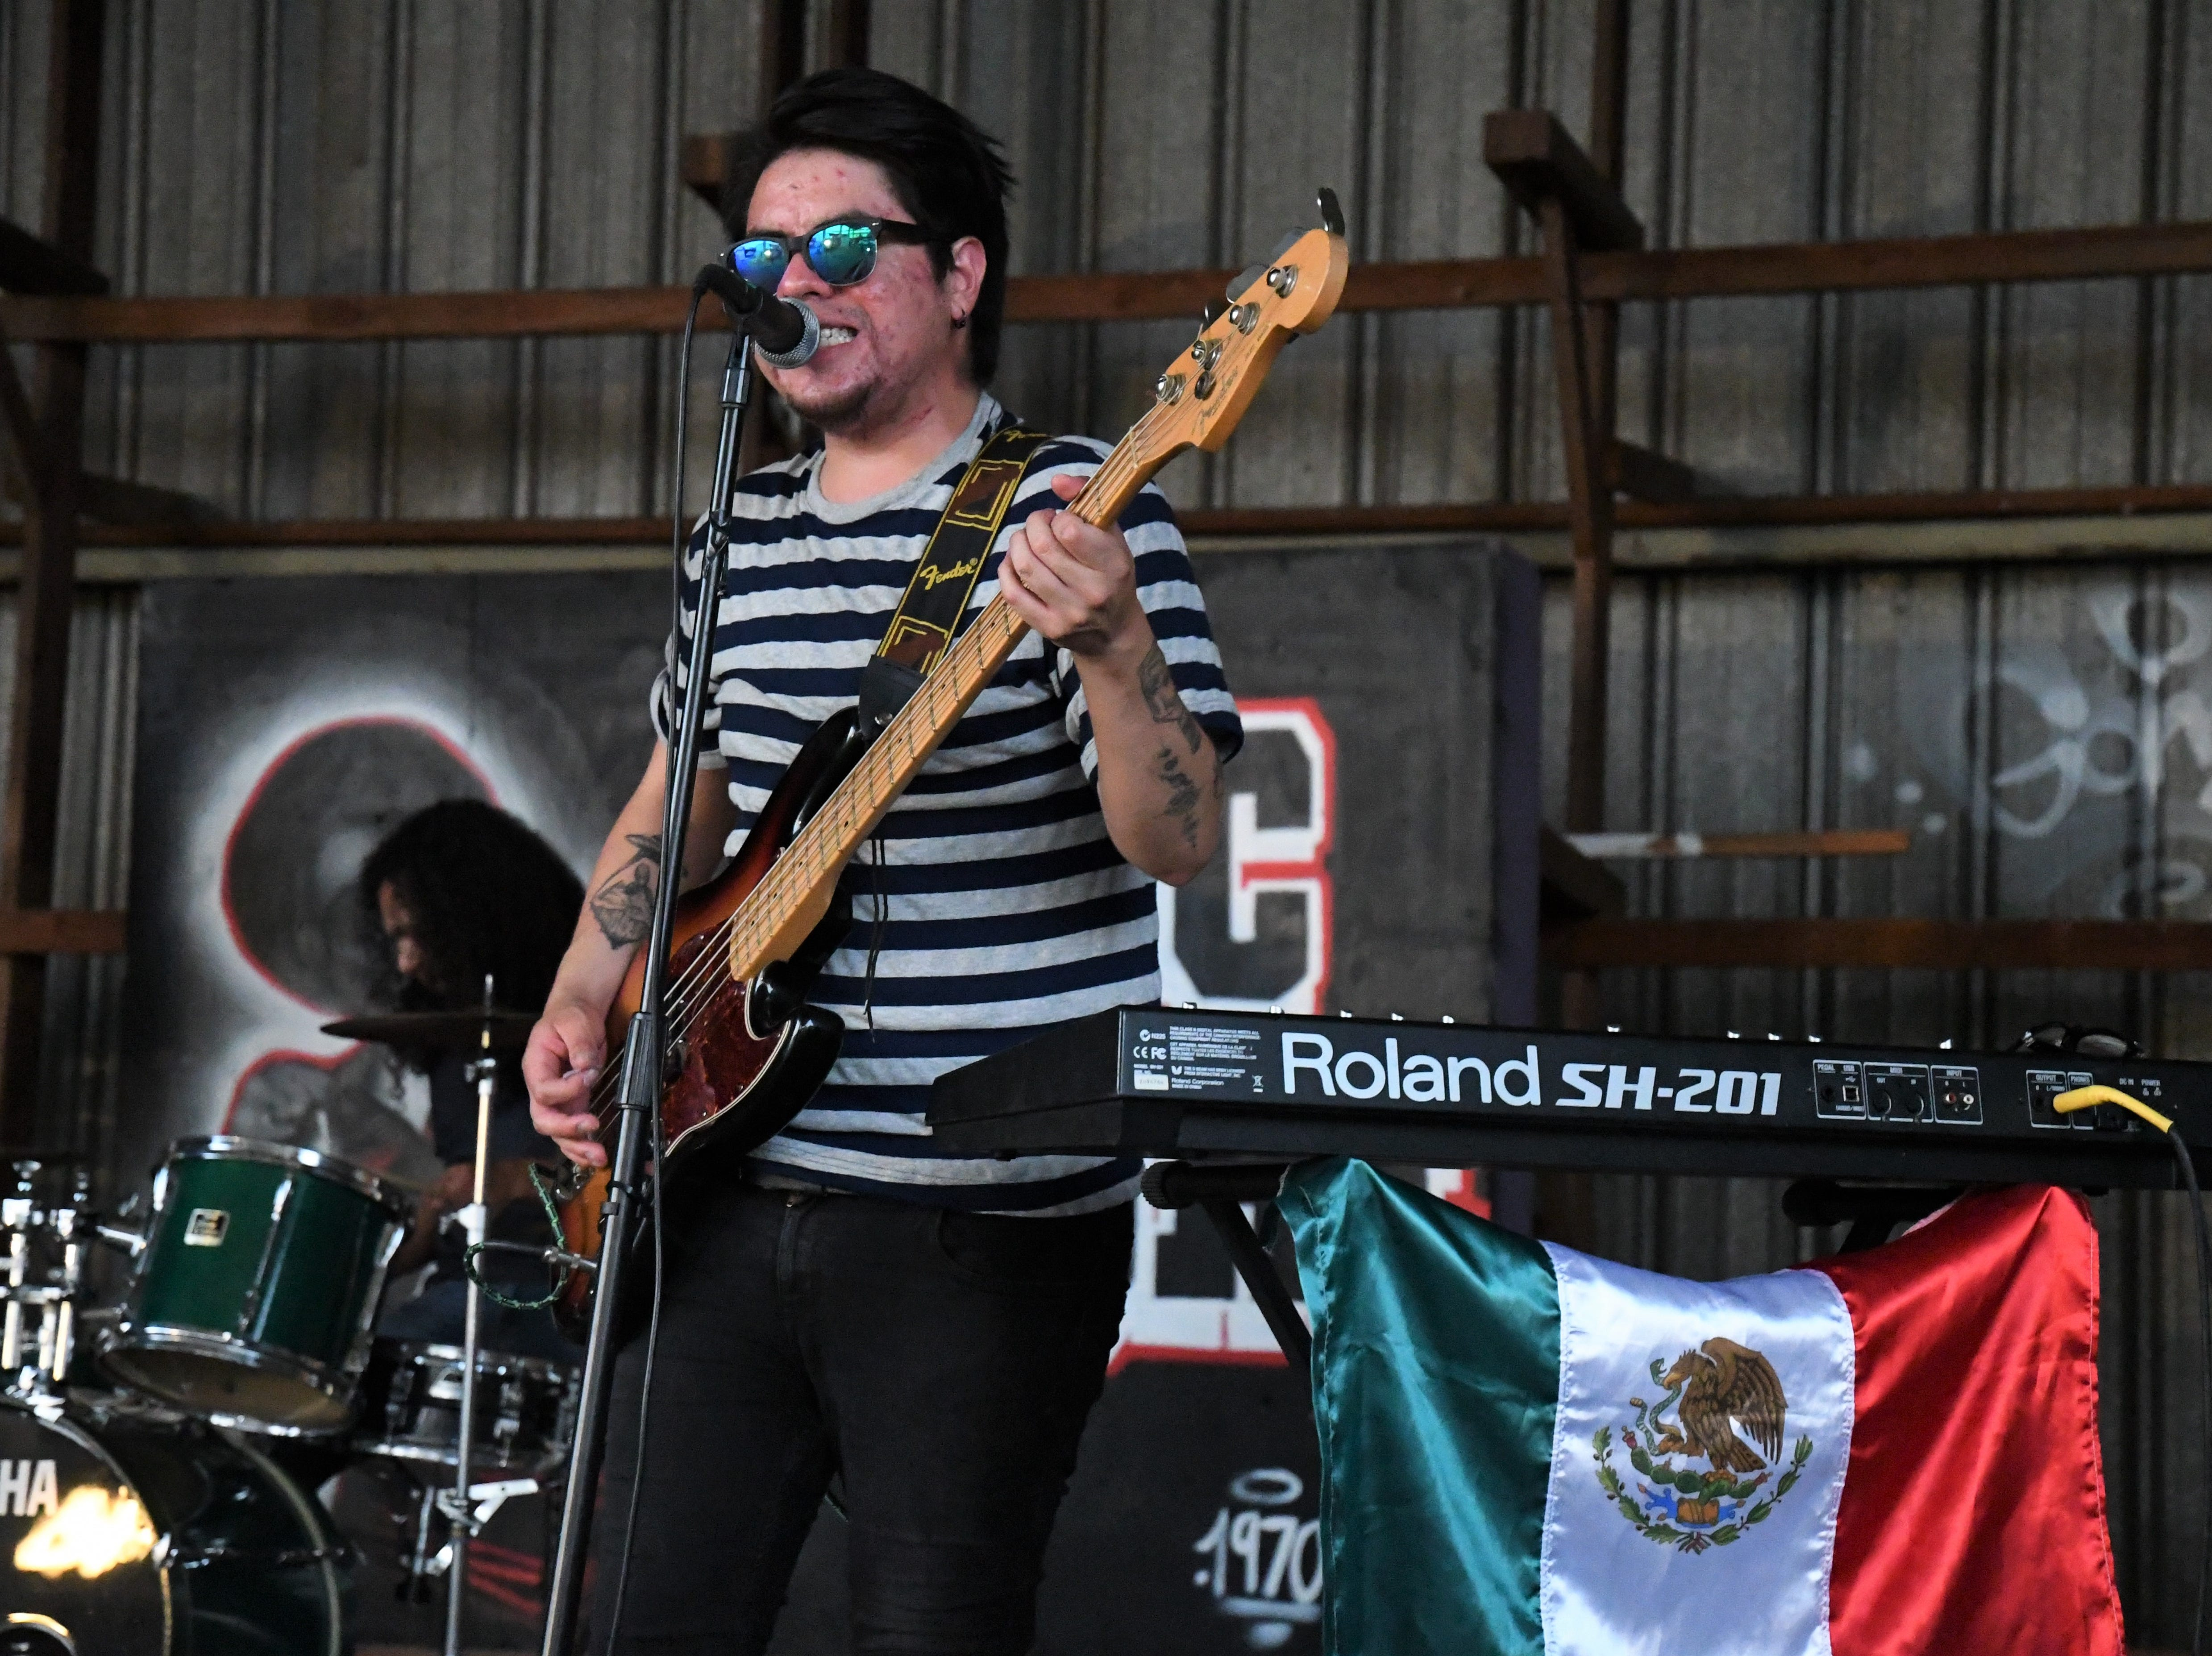 Los Discorde from Mexico City shredding at the Old Lumber Yard